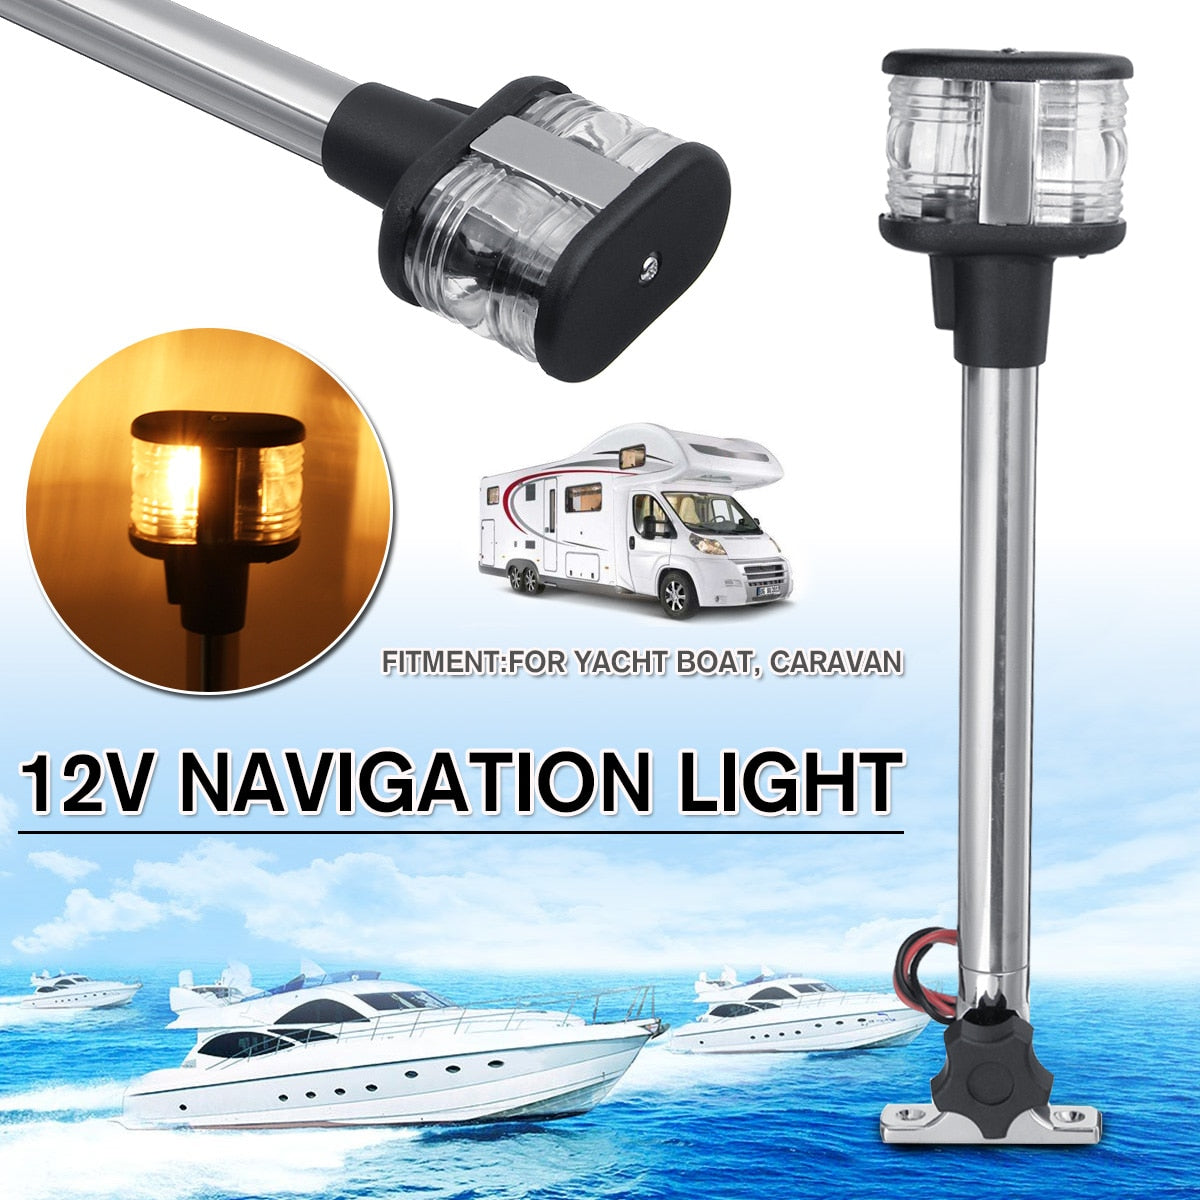 Fold Down Fold Down LED Navigation Light For Yacht Boat Stern Anchor Light 12-24V 25cm Pactrade Marine Boat Sailing Signal Light